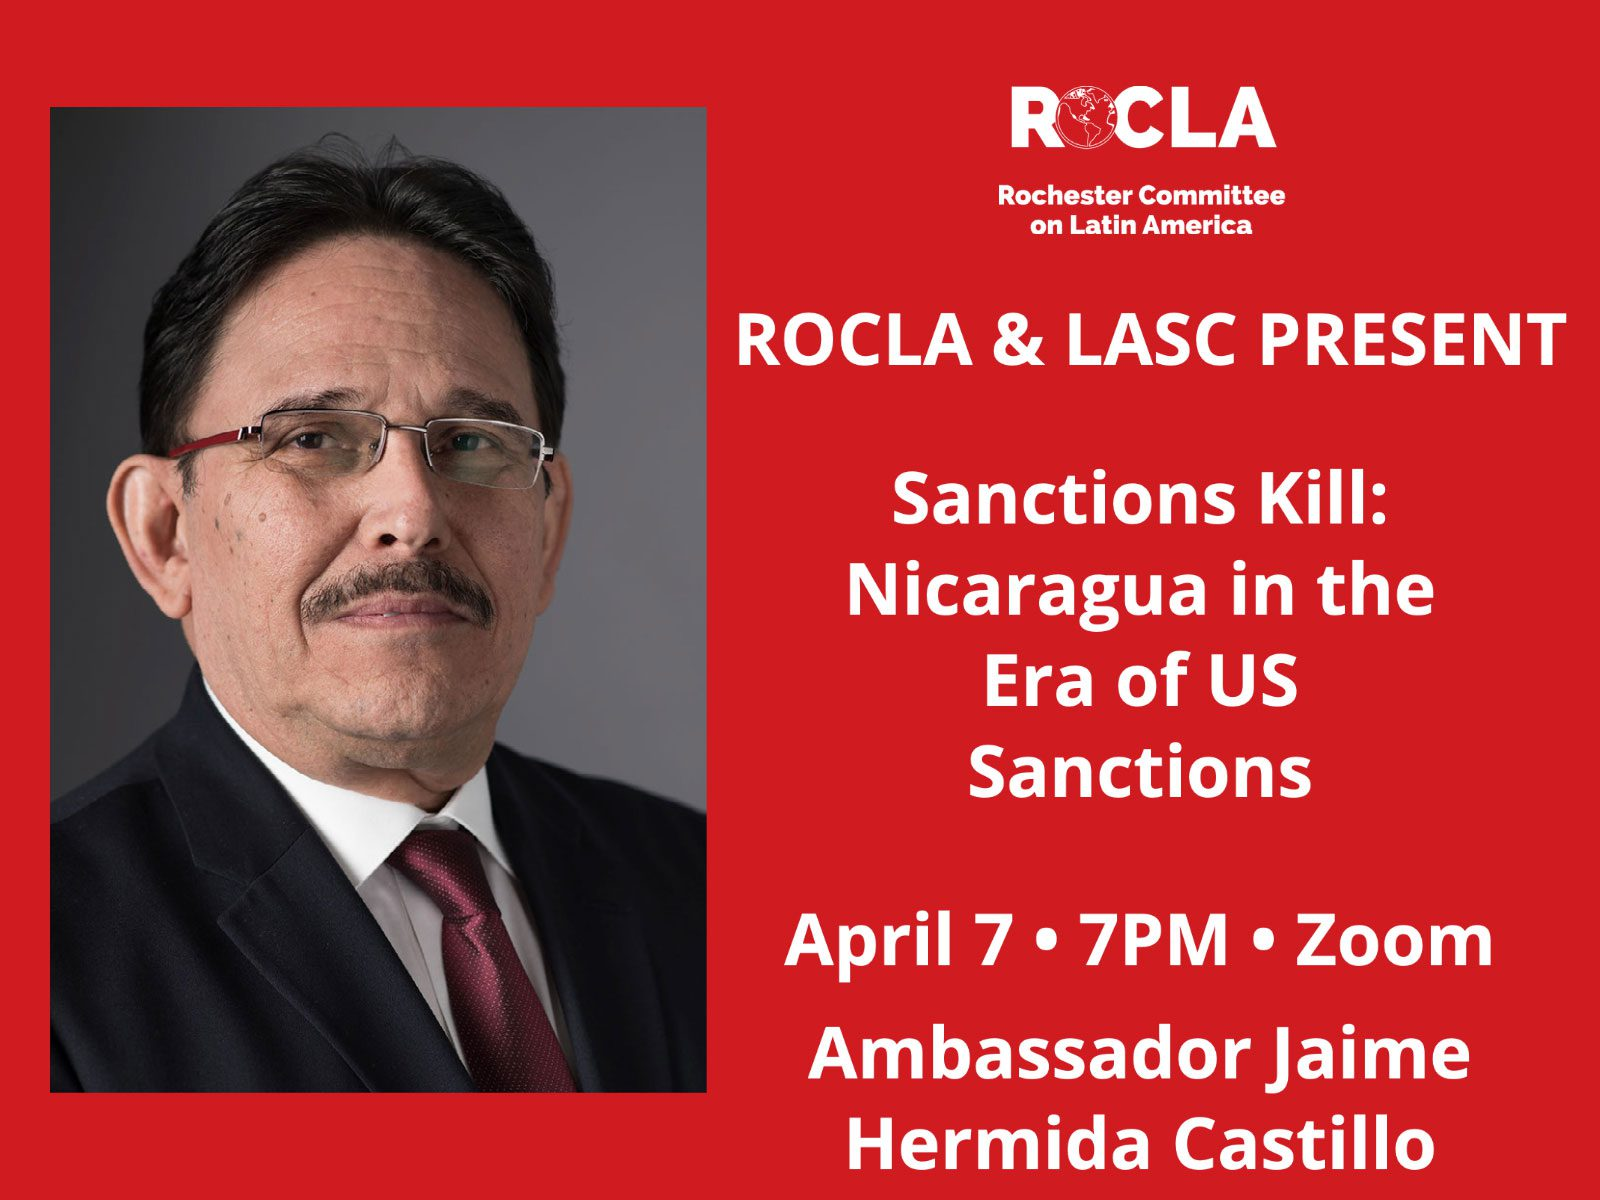 Sanctions Kill: Nicaragua in the Era of US Sanctions